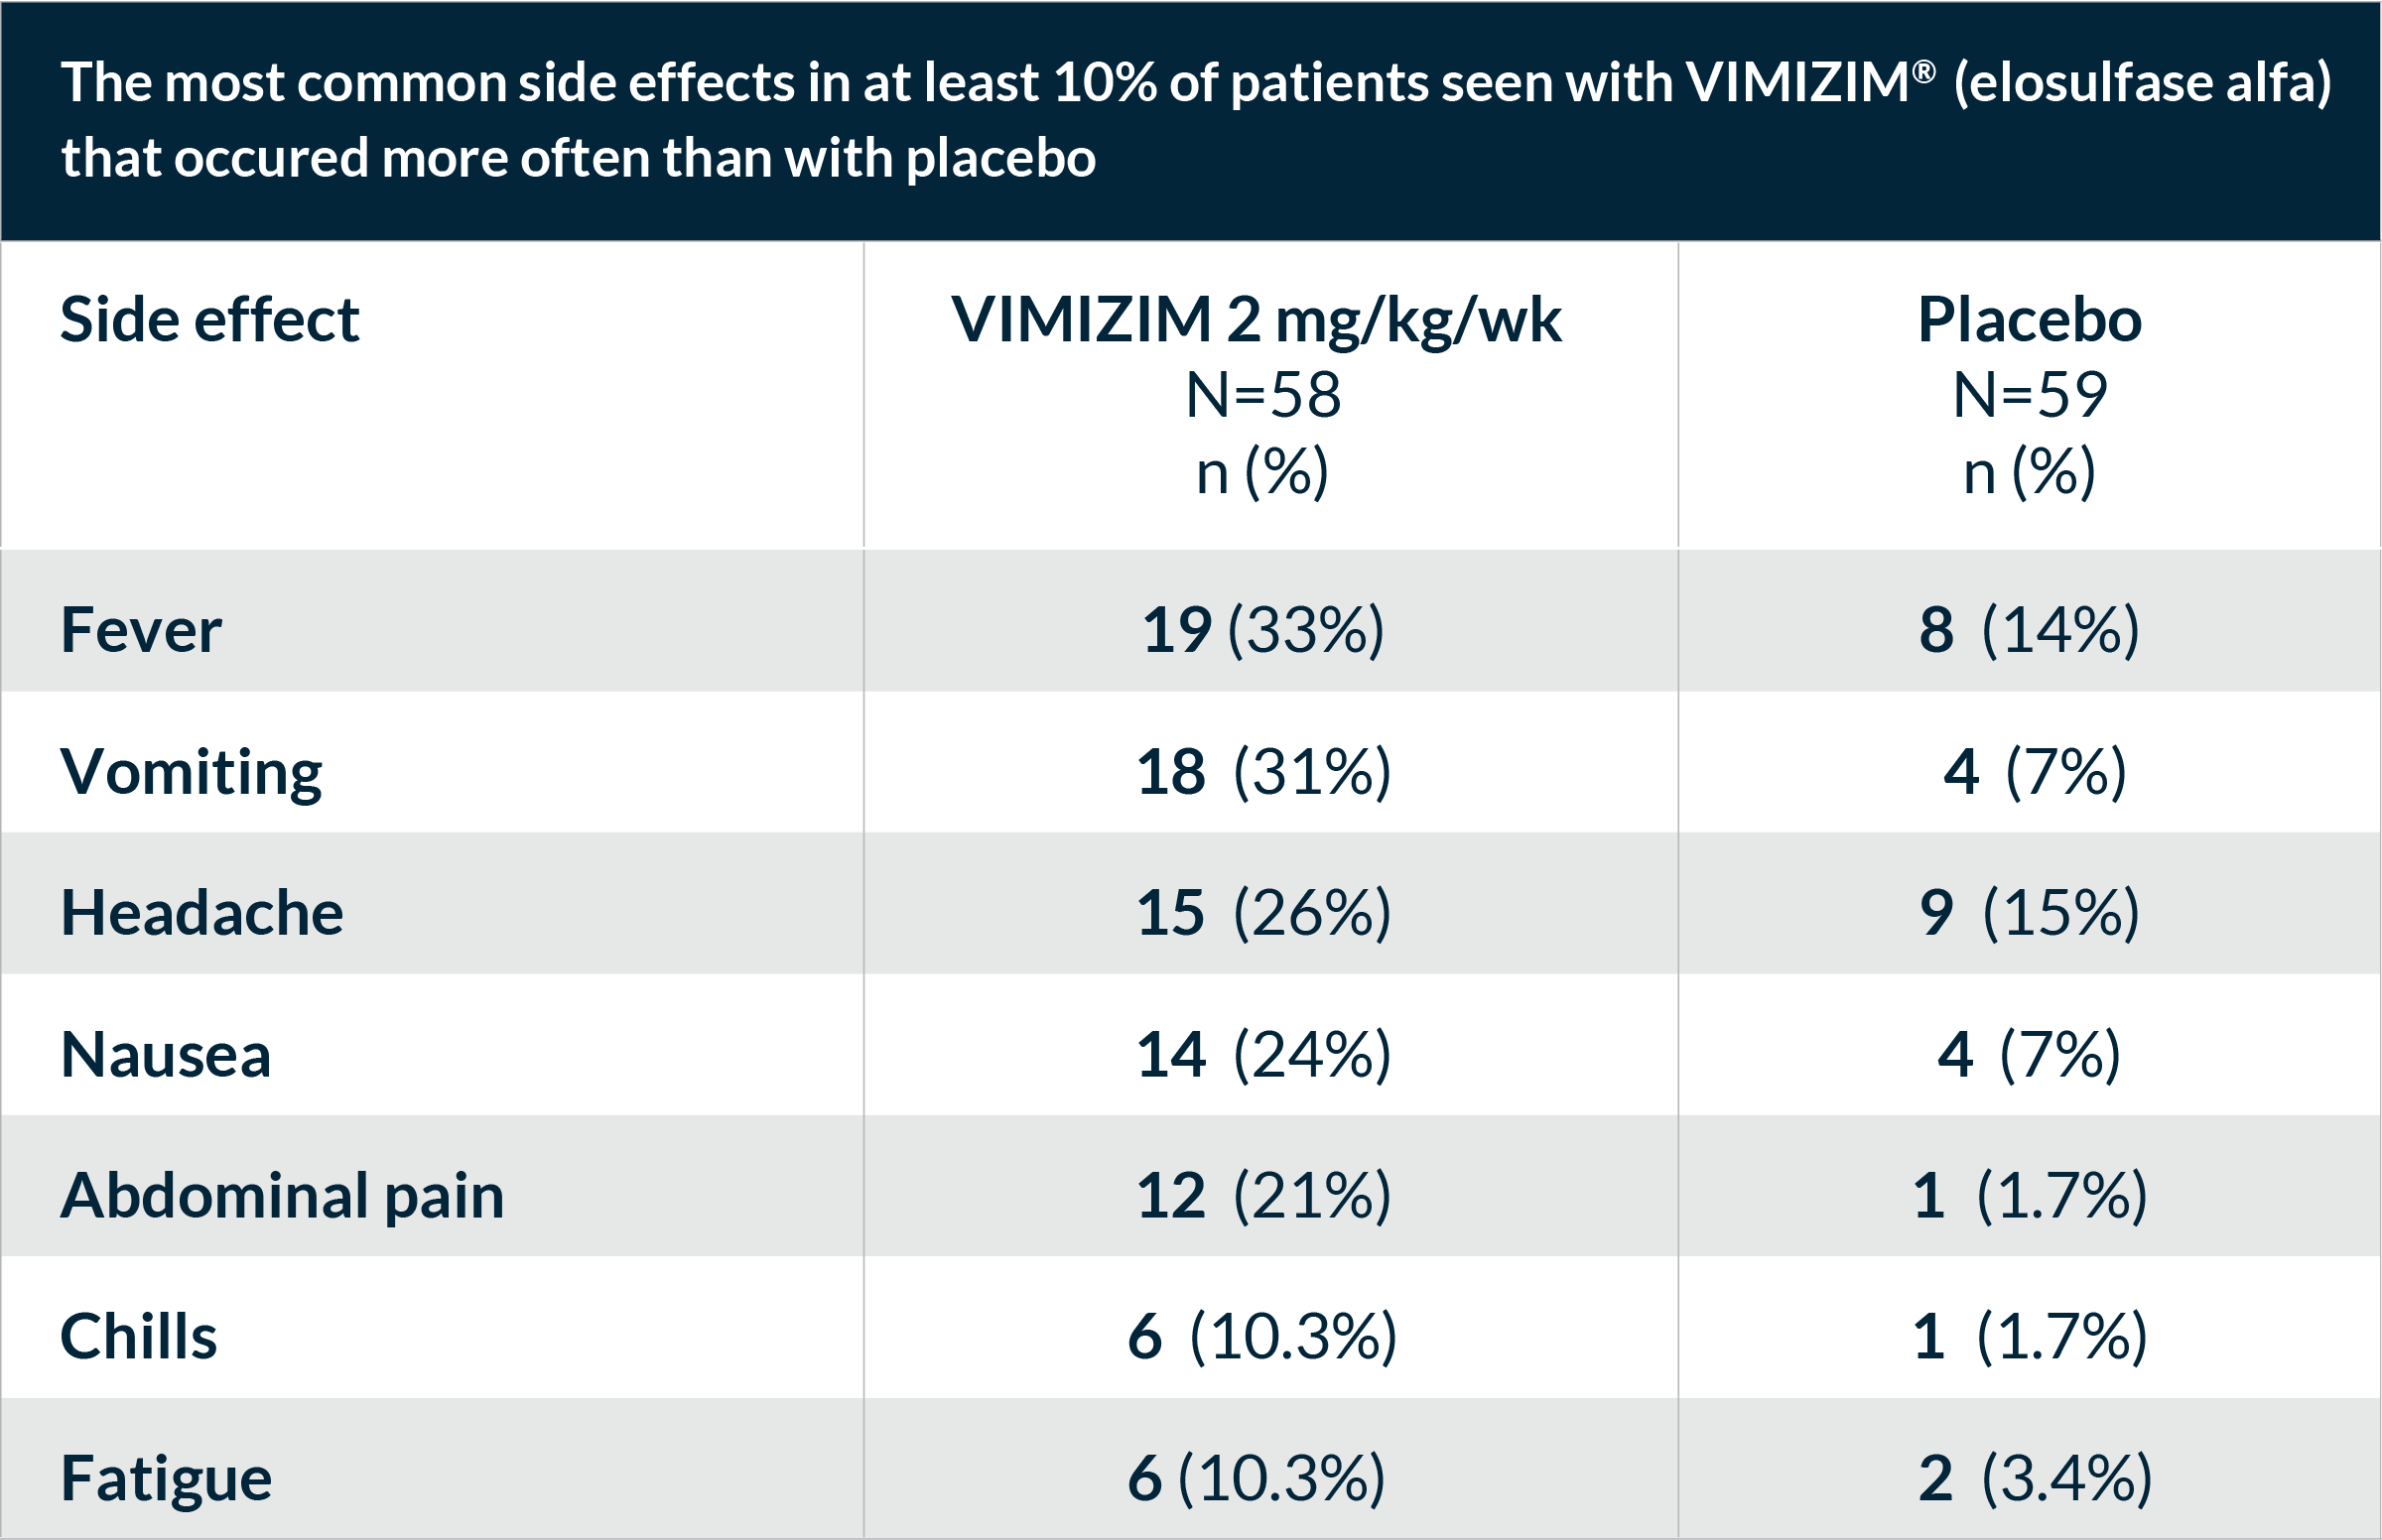 Most common side effects of VIMIZIM